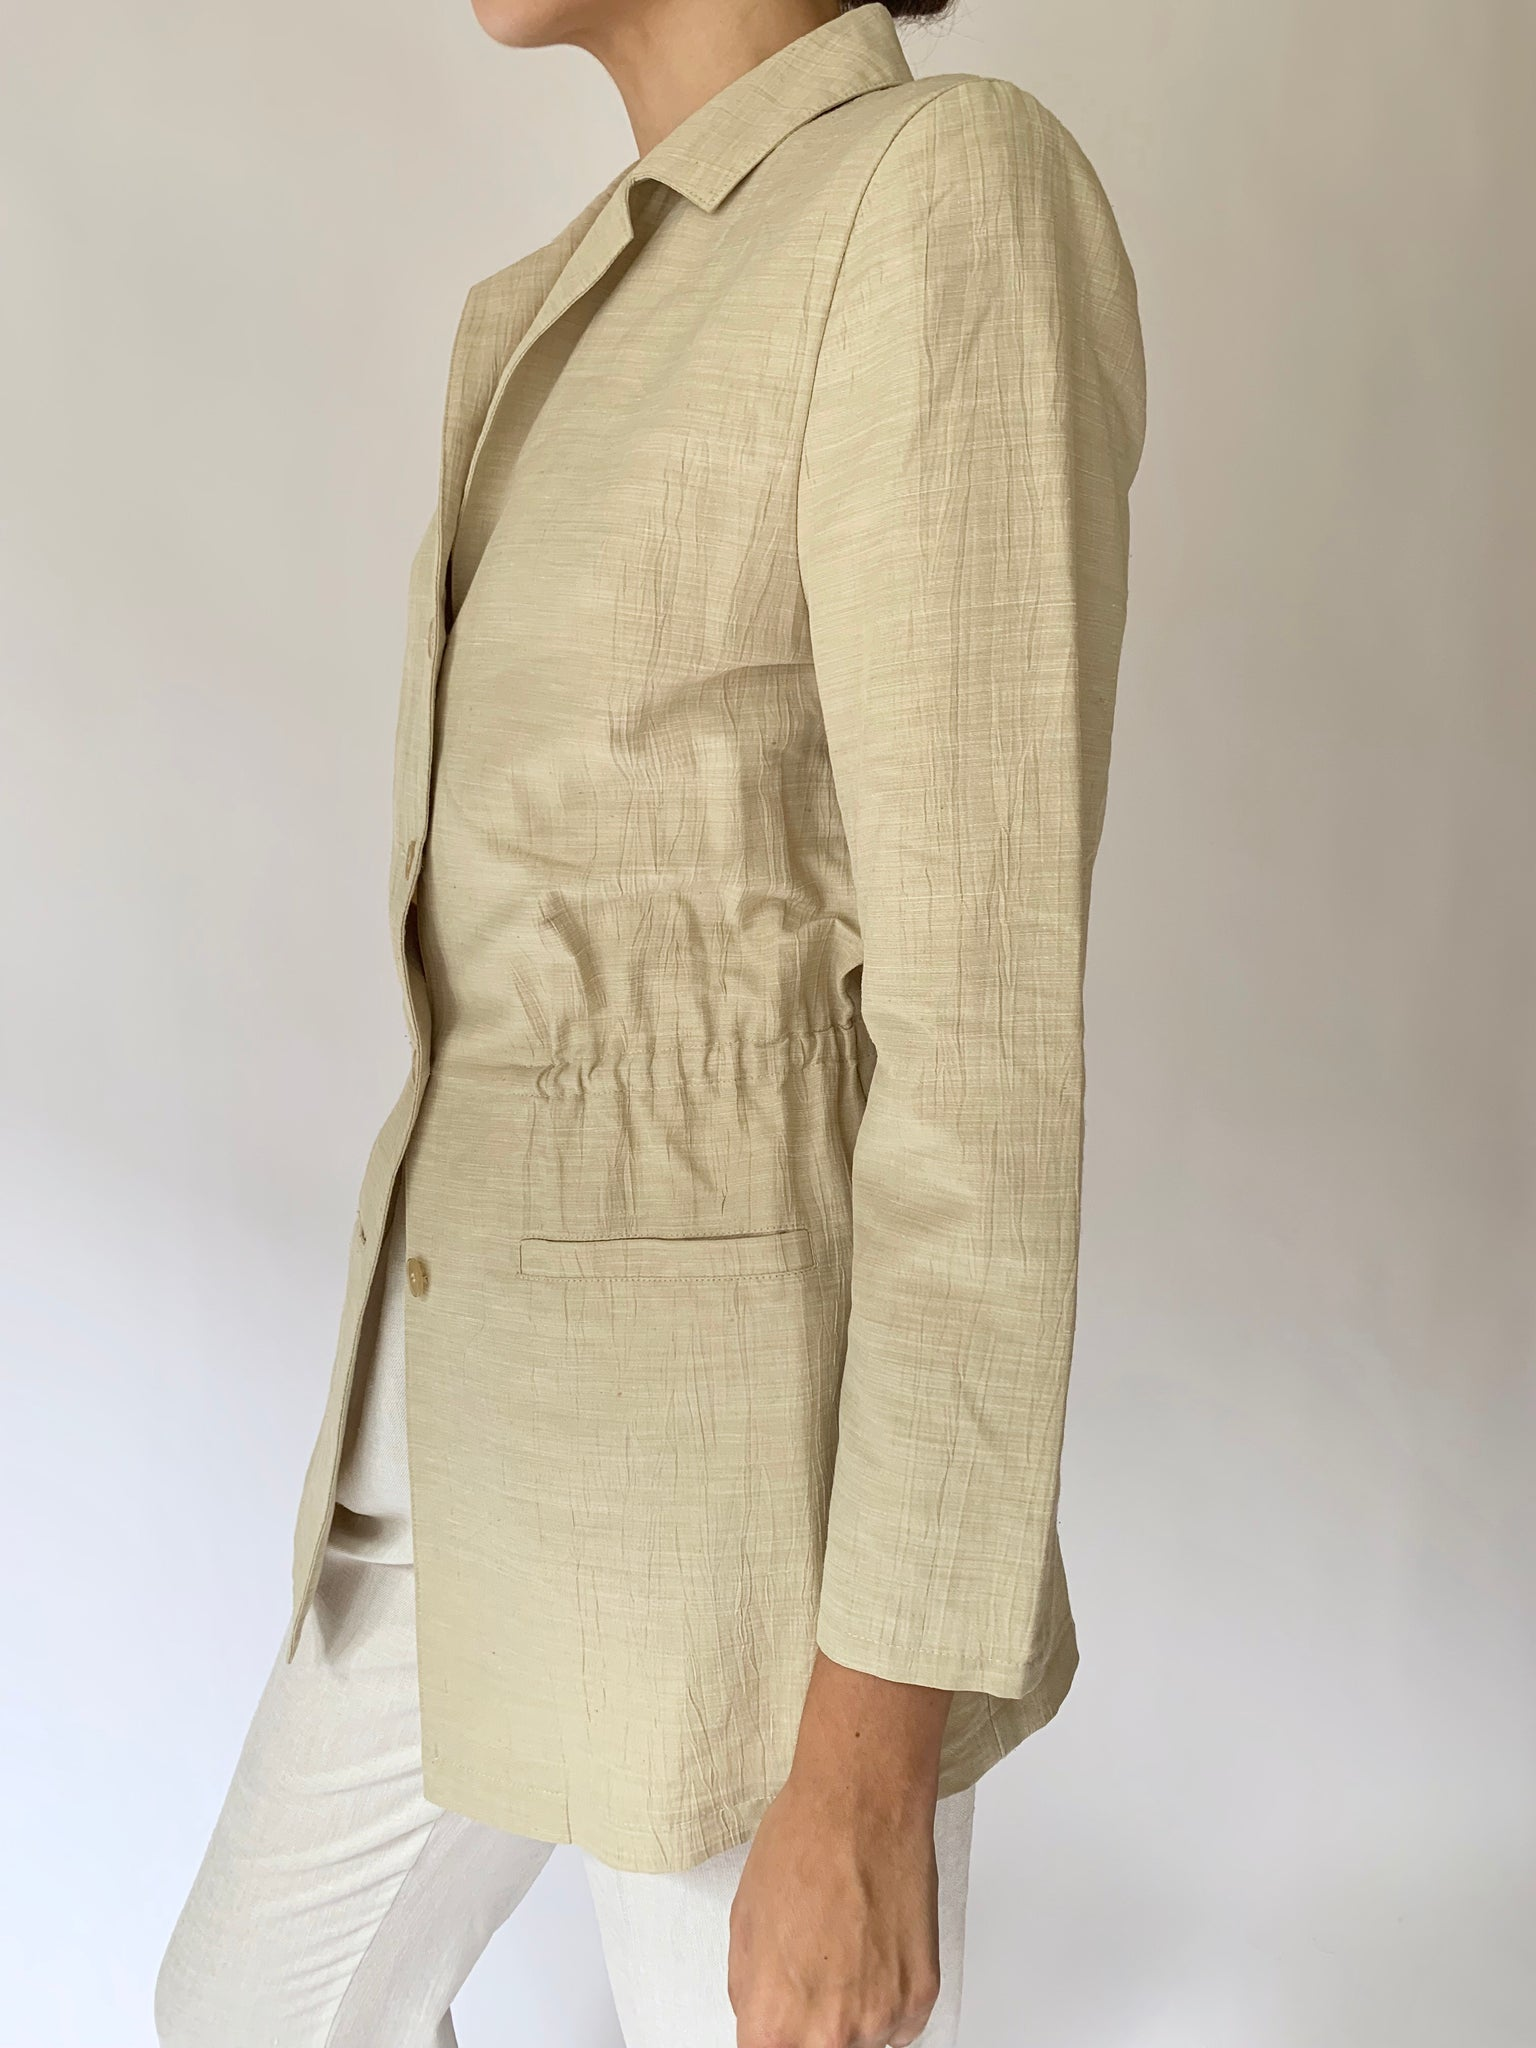 Safari style summer jacket